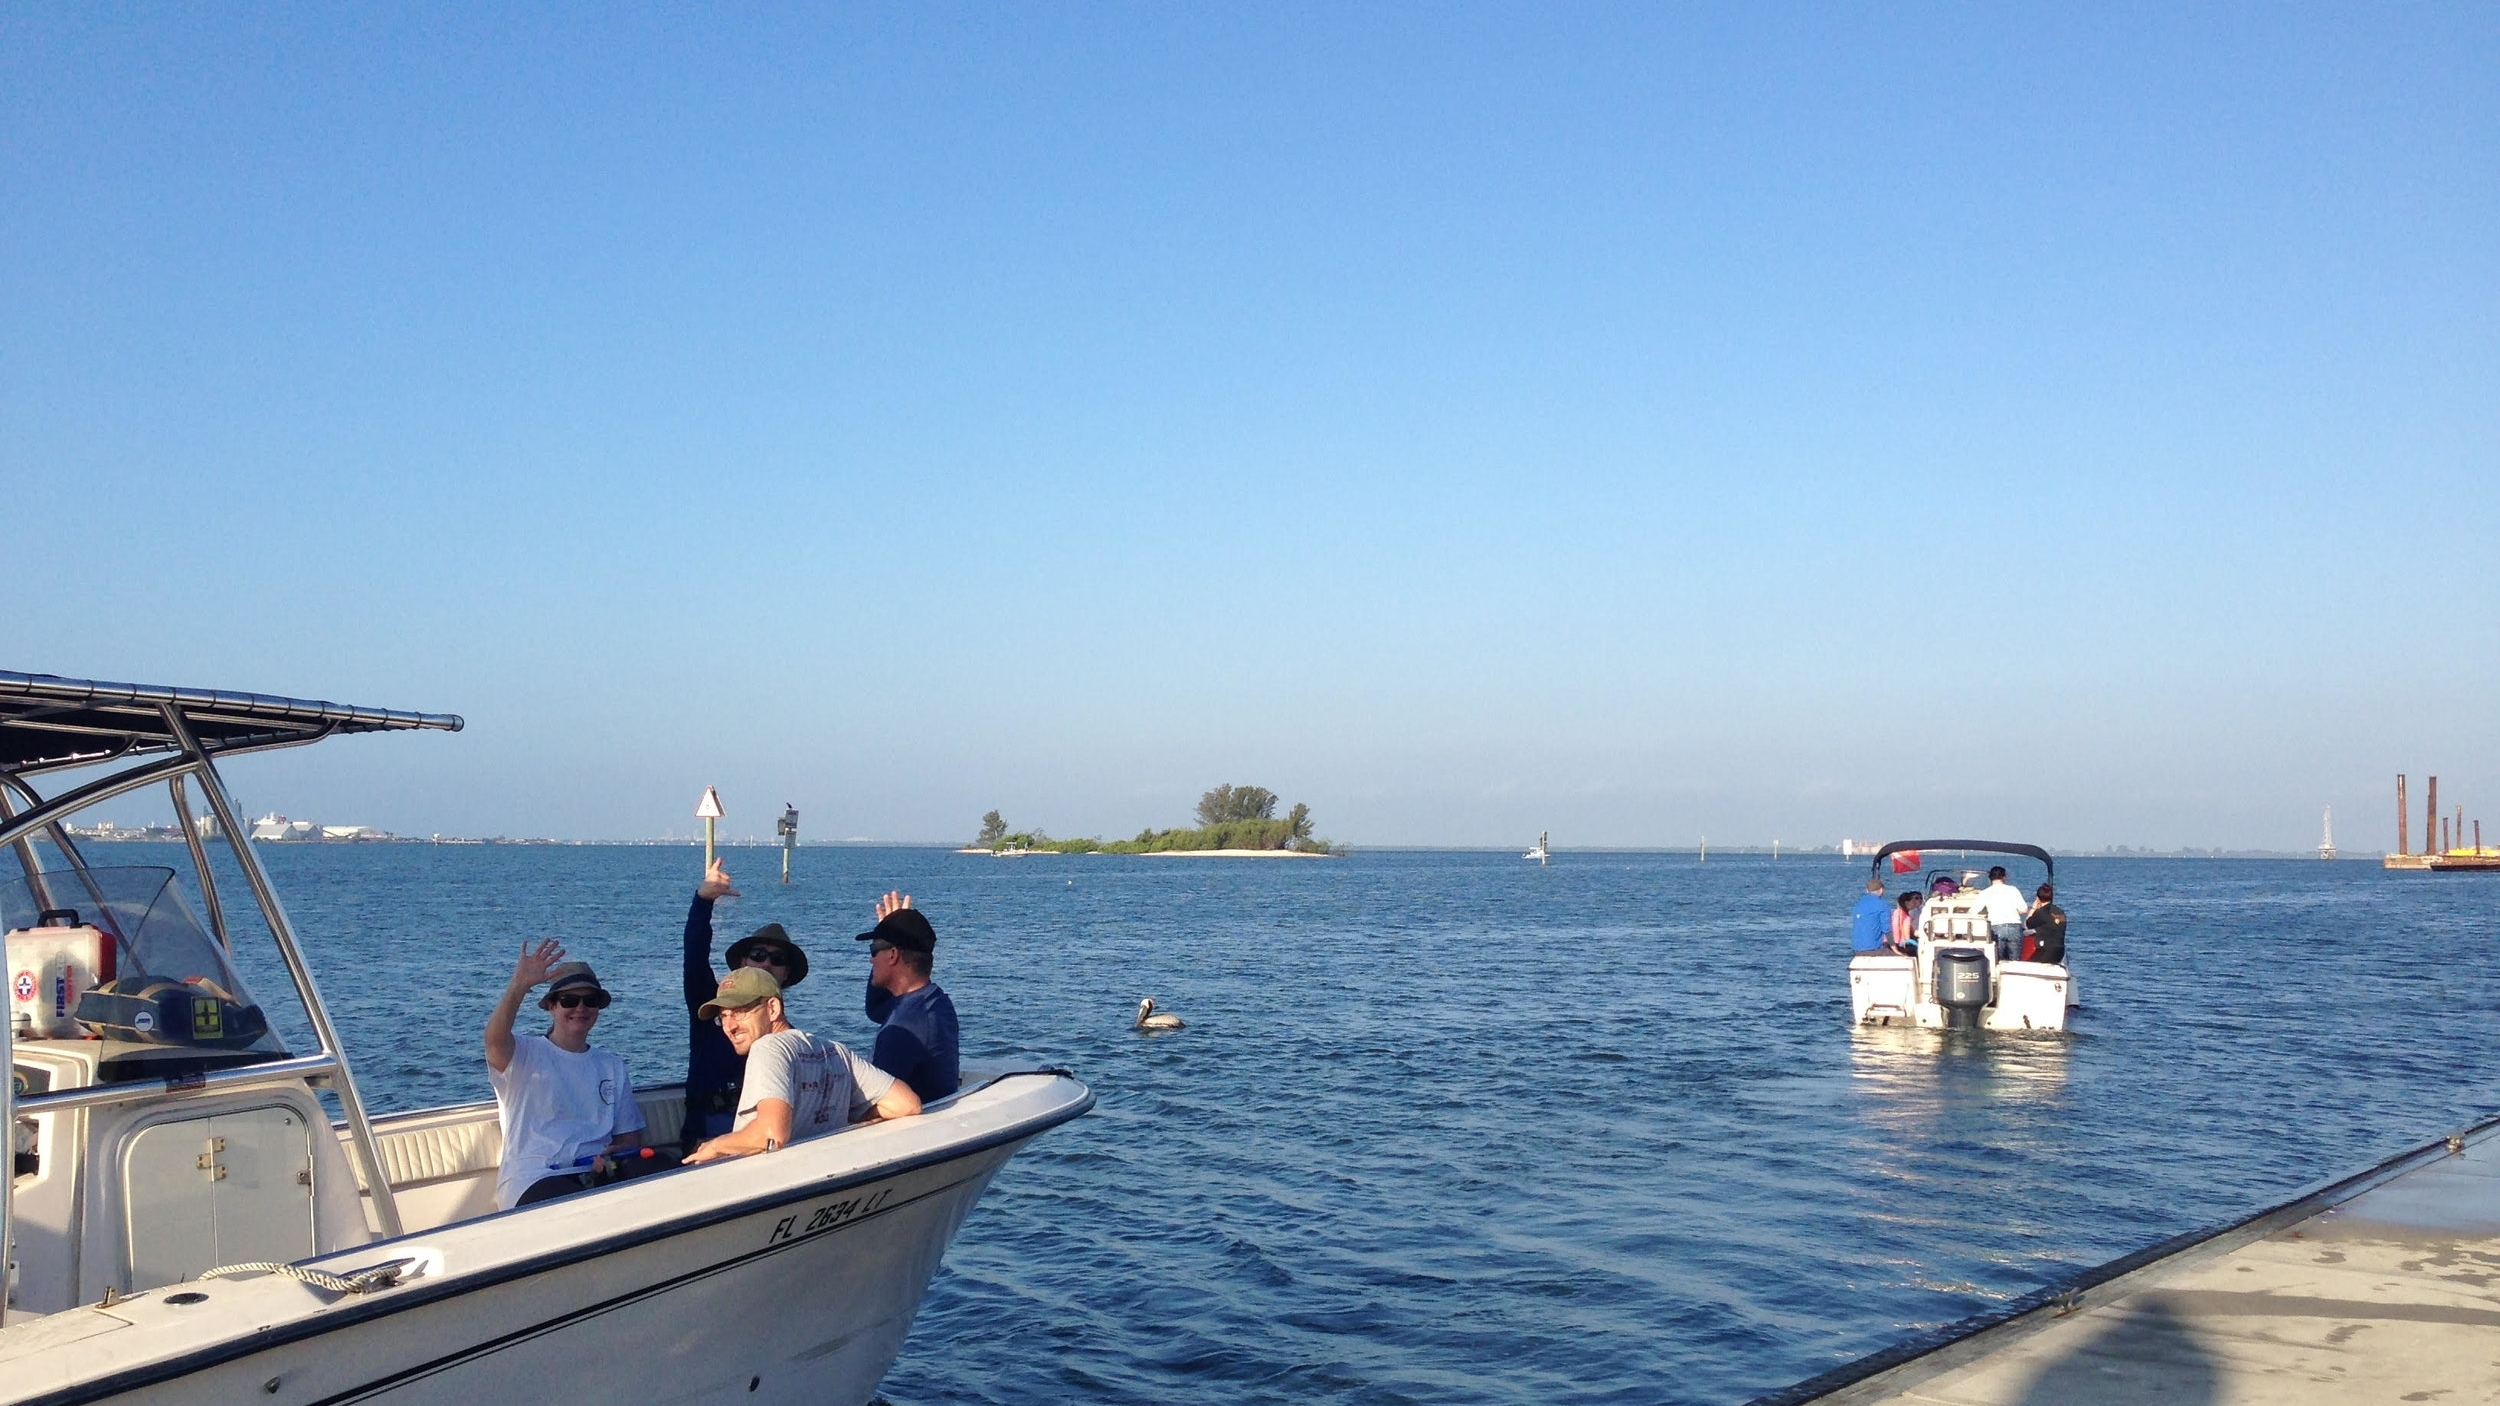 Heading out into the warm waters of Tampa Bay to participate in the BioBlitz